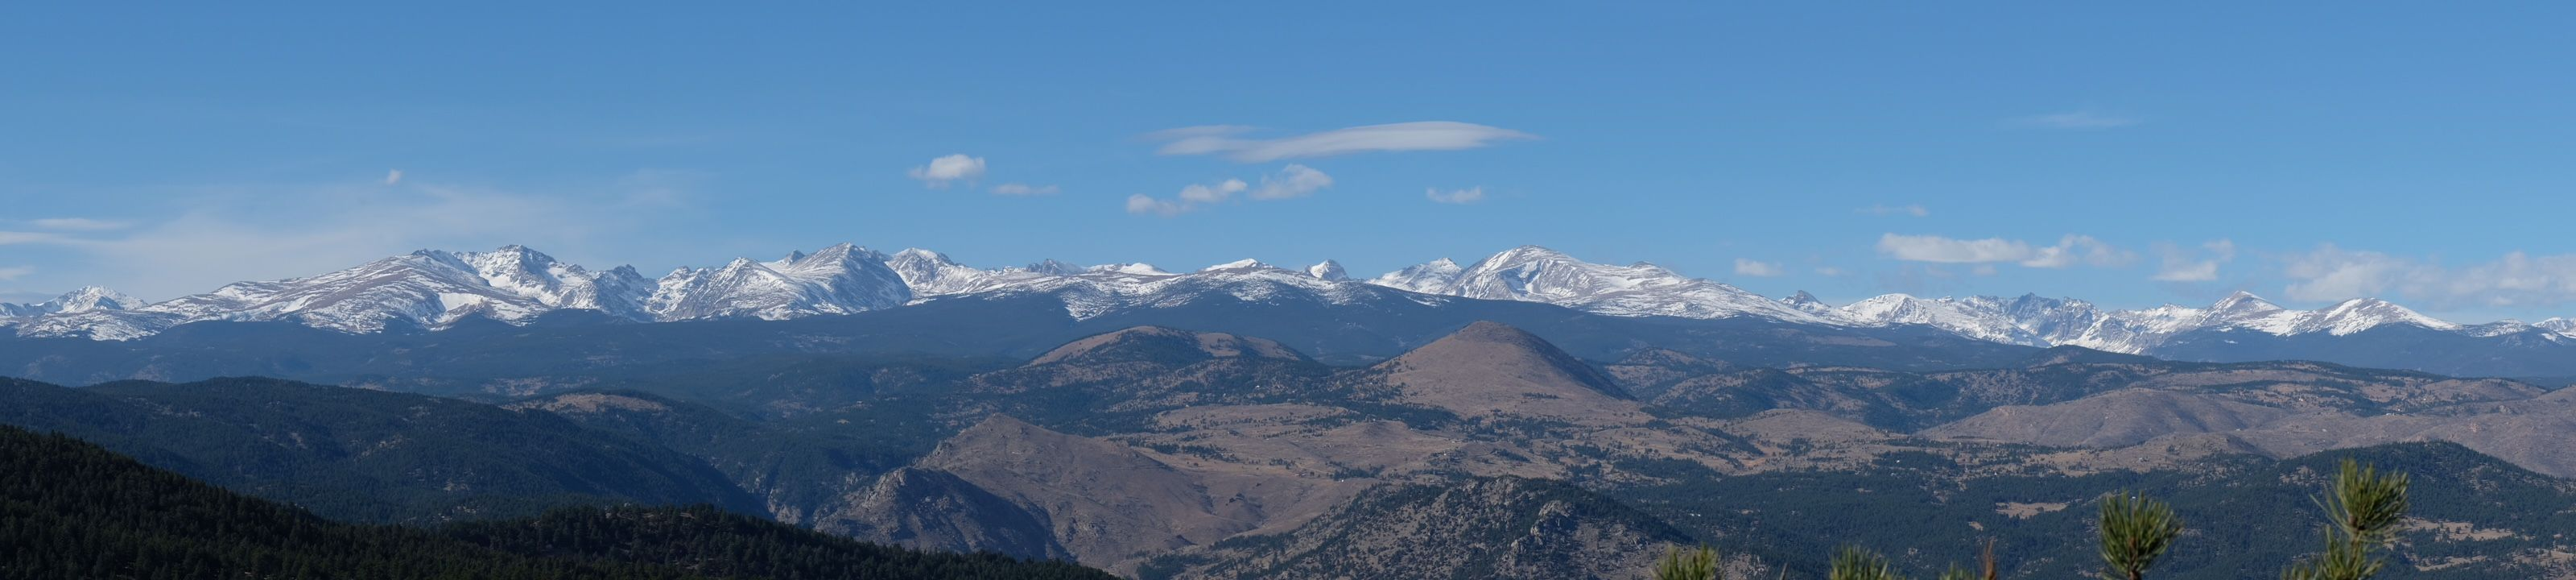 Pictures Of The Continental Divide Colorado